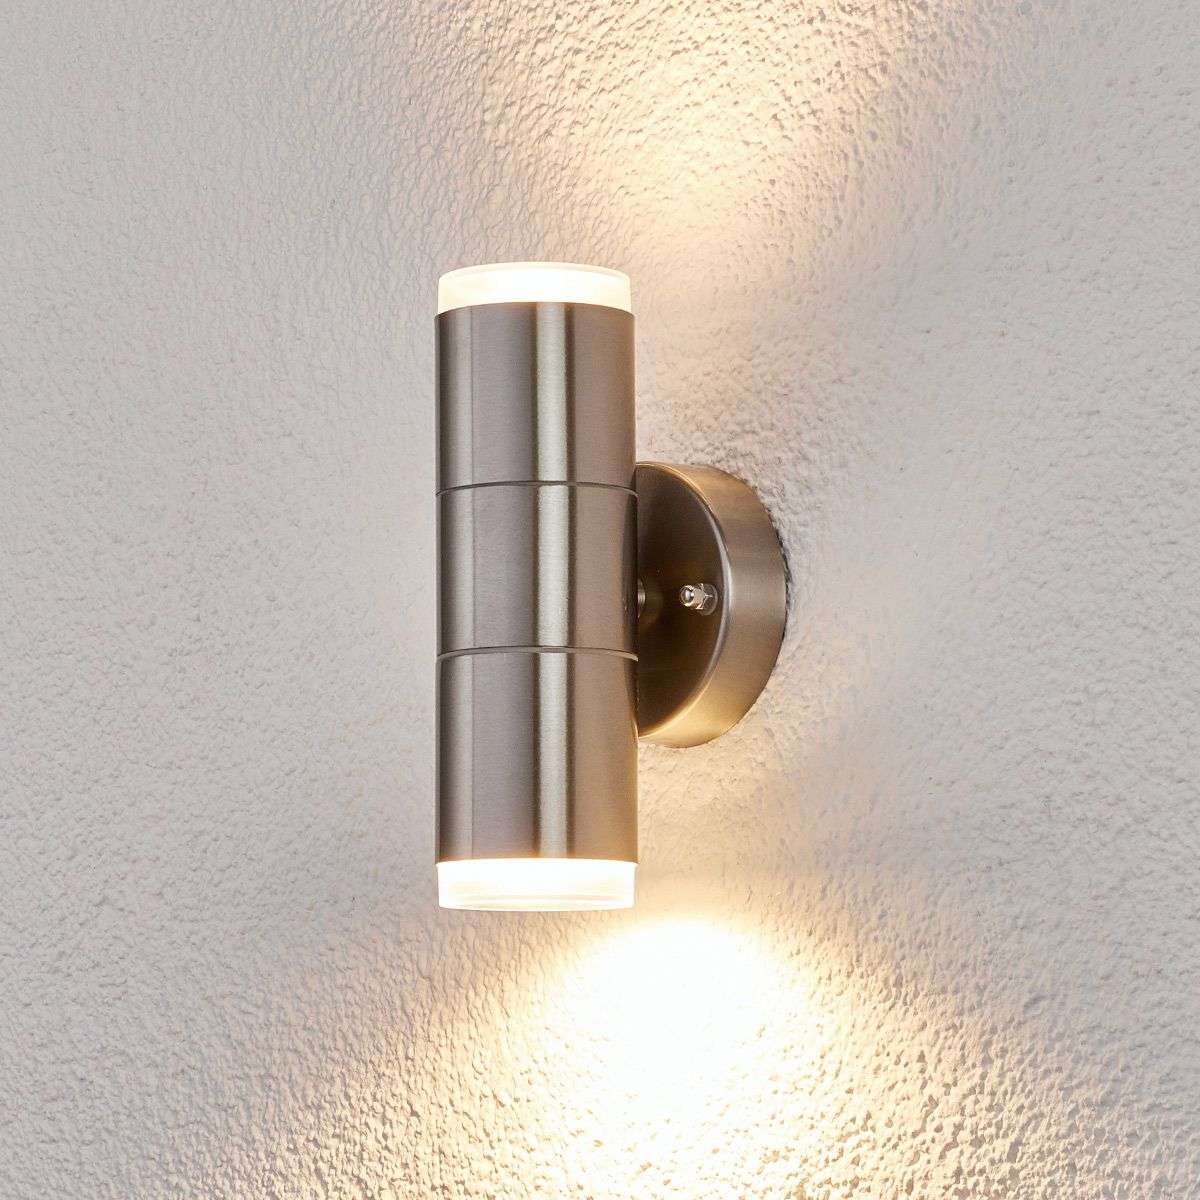 Stainless steel outdoor wall light delina lights stainless steel outdoor wall light delina 9977009 32 aloadofball Image collections